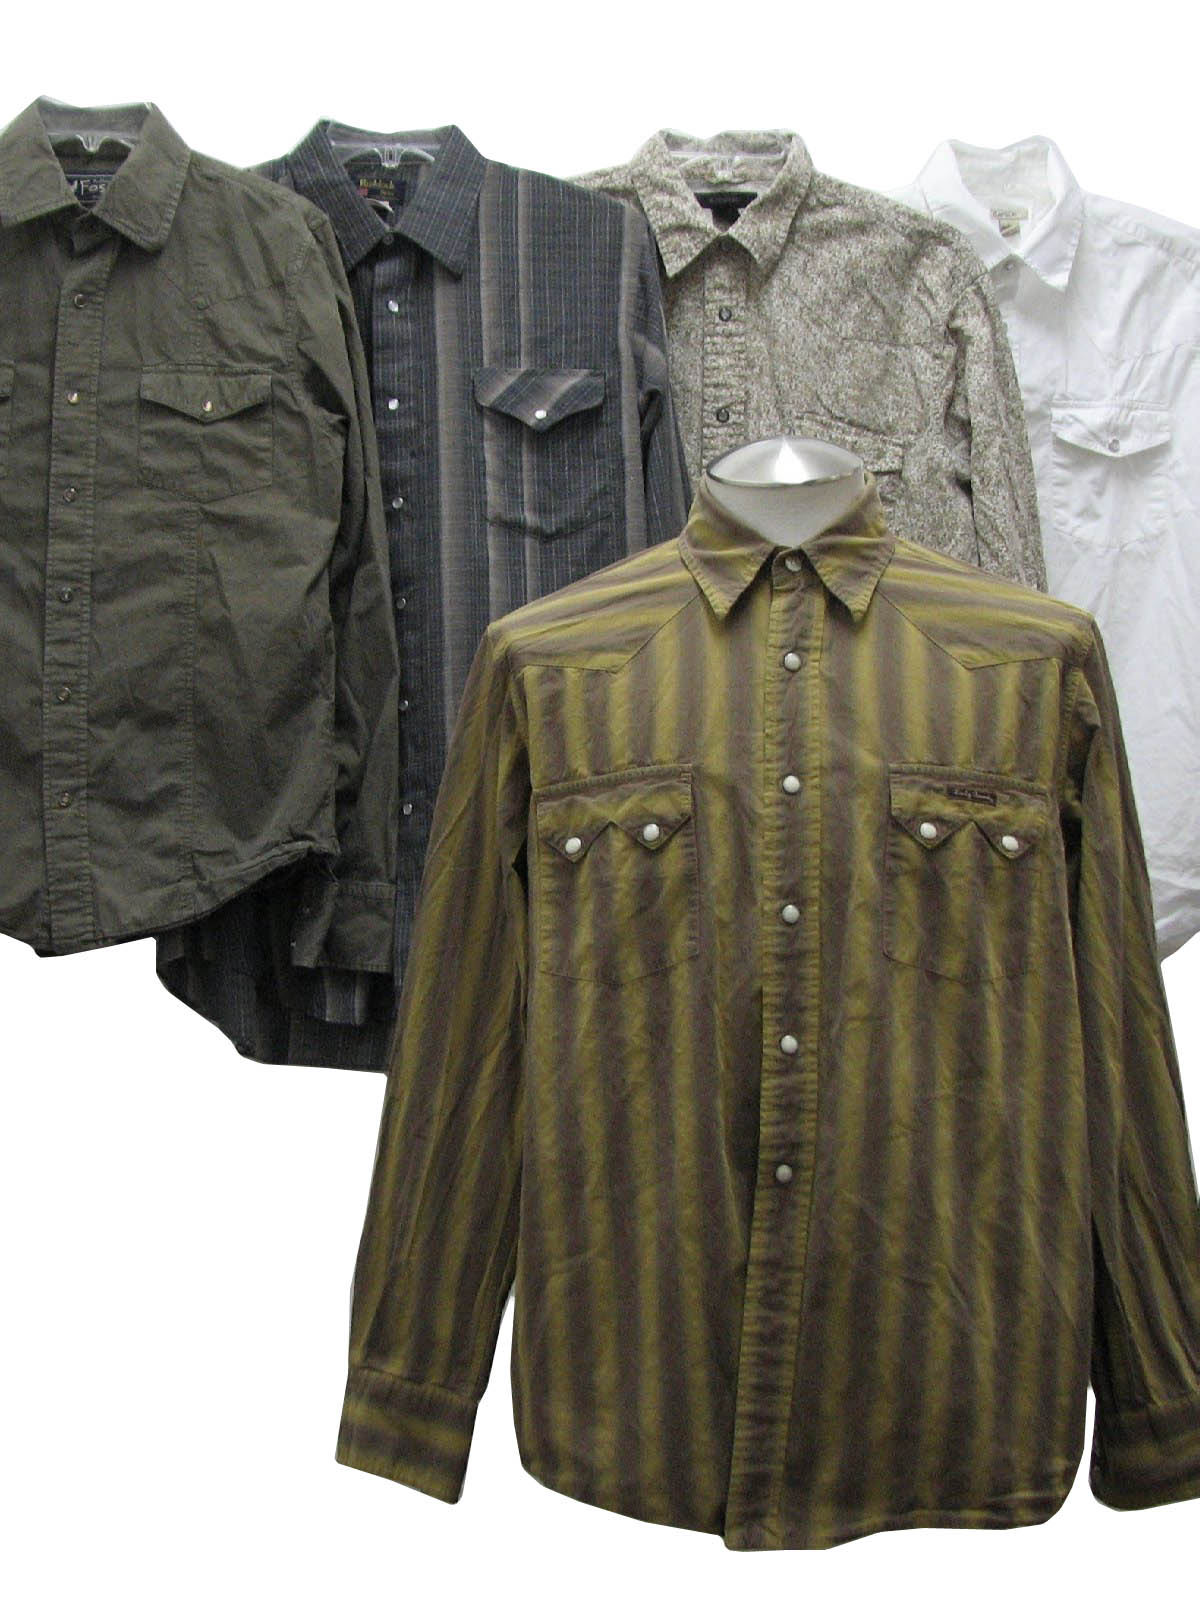 1980s Vintage Western Shirt Lot Of Qty 5 Wholesale Mens